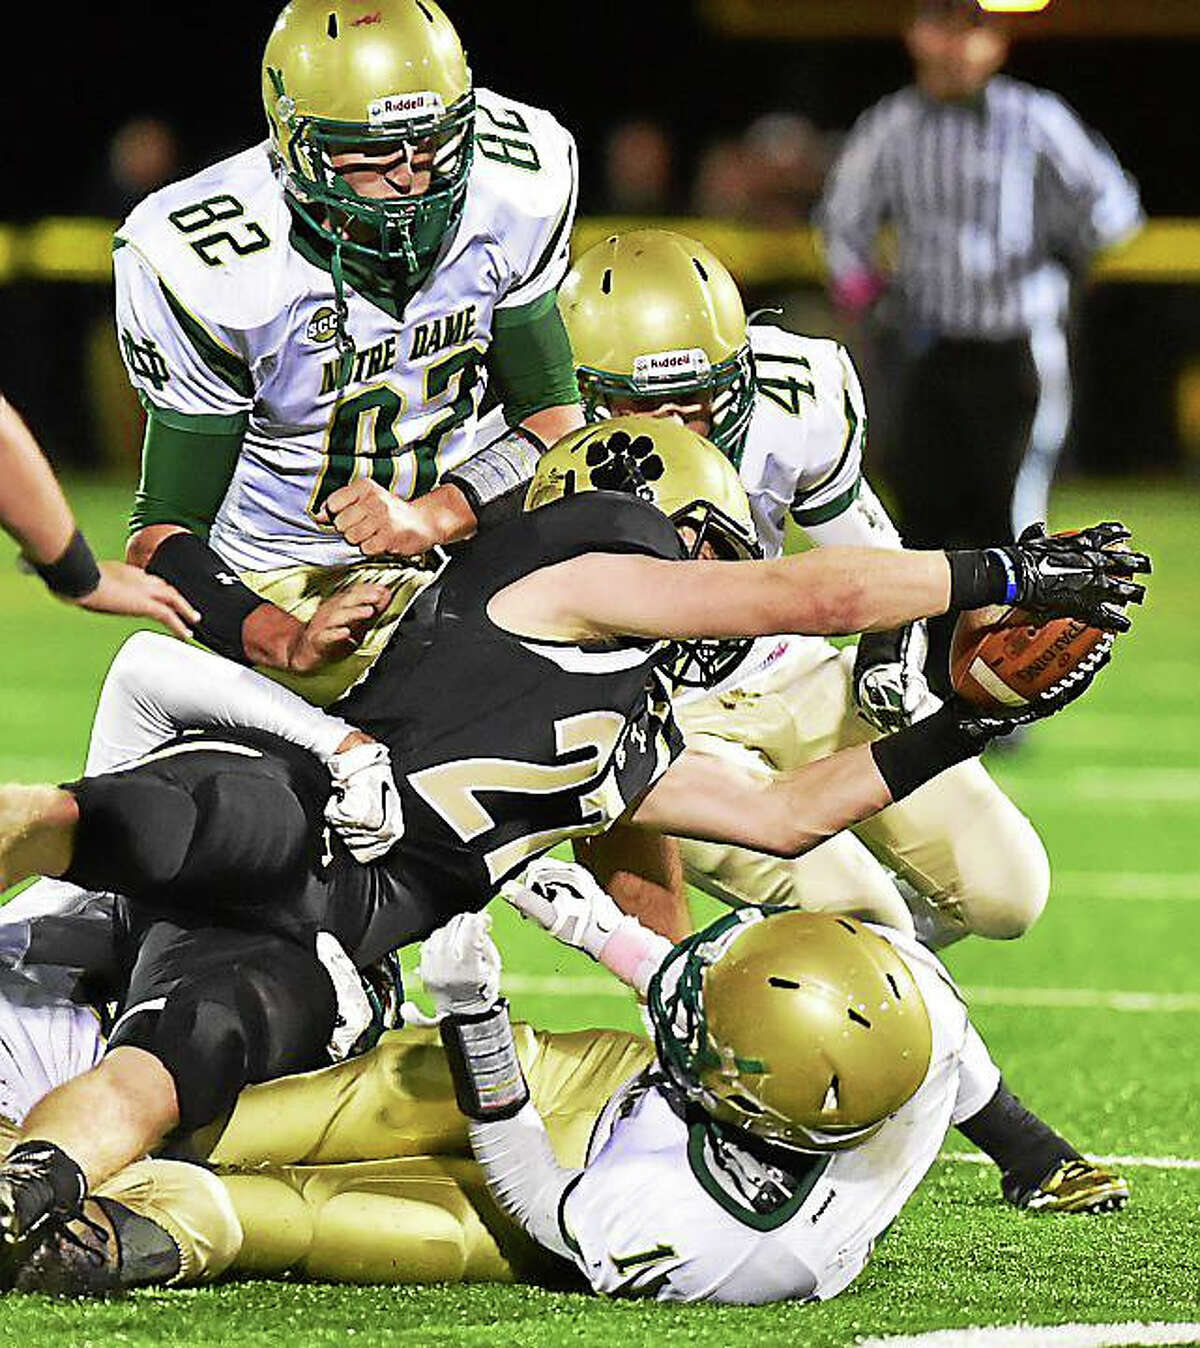 Norte Dame-West Haven's Kameron Matthews, Frank Longley and Prince Brooks tackle Hand's Ryan Kaufmann earlier this year.